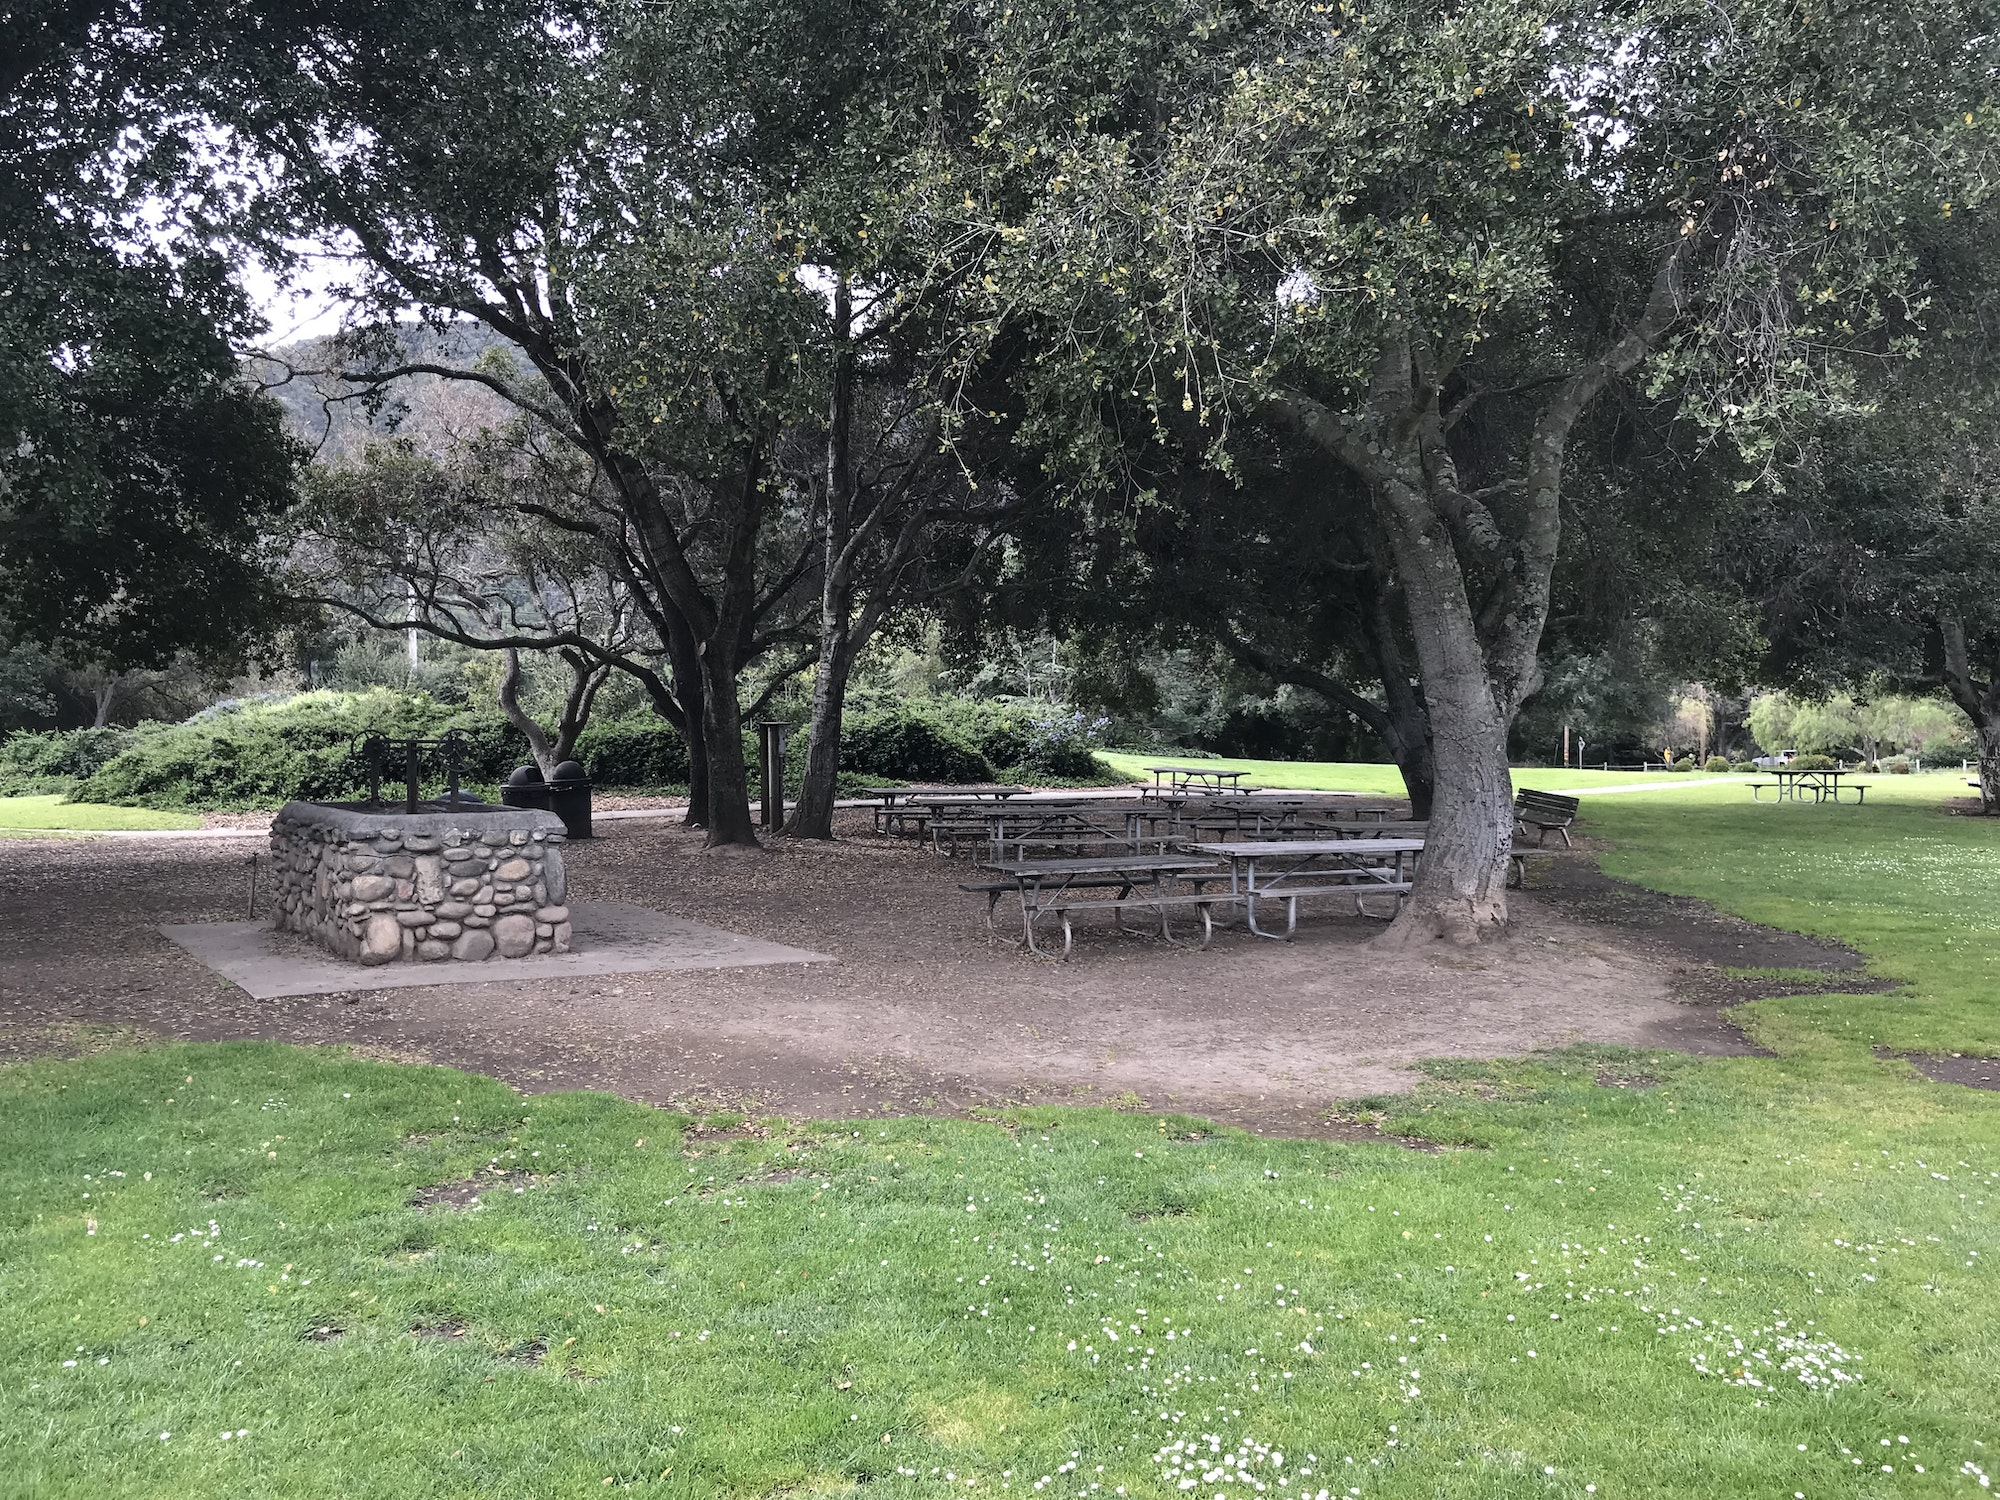 Large BBQ area with grass. trees & picnic tables